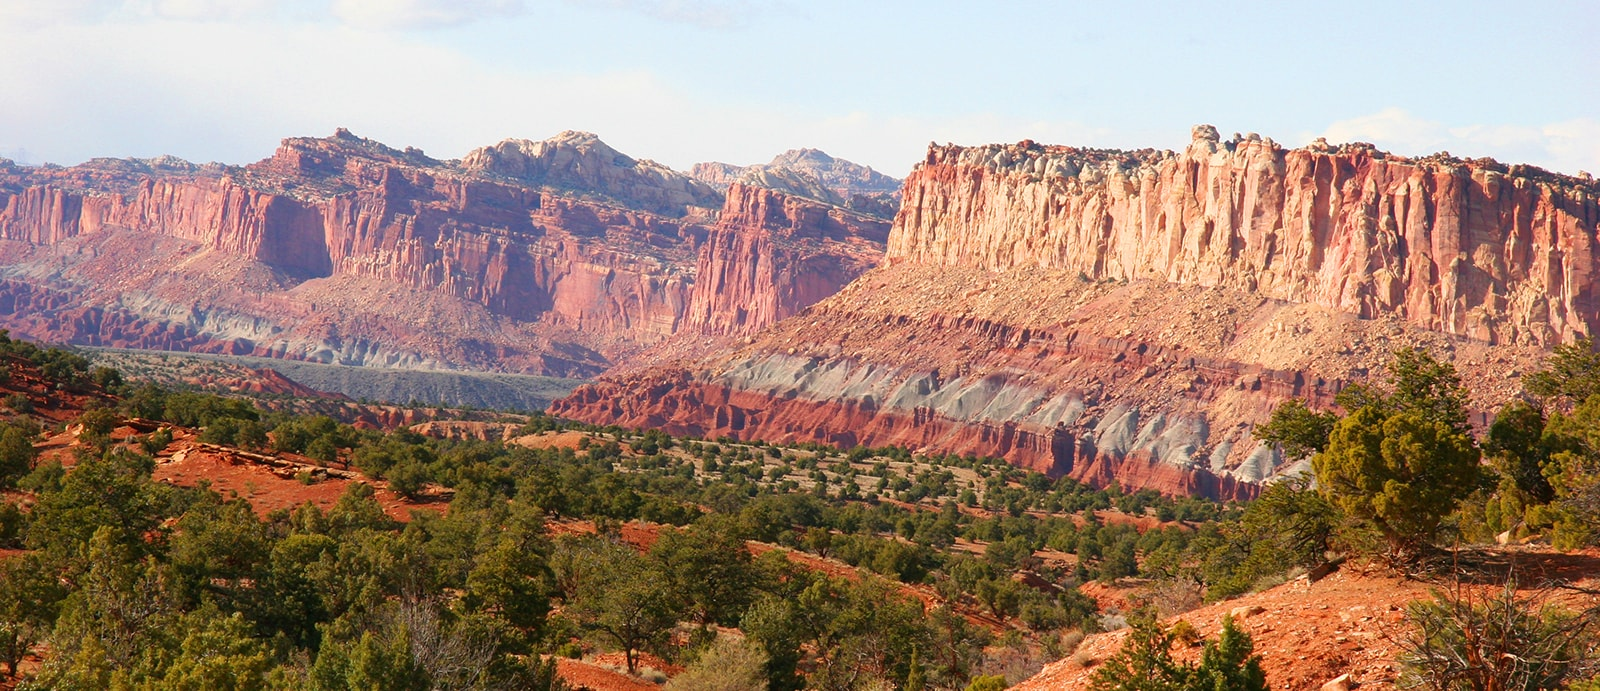 Hike Utah's Waterpocket fold, Bear's Ears, Escalante Grand Staircase and Capital Reef